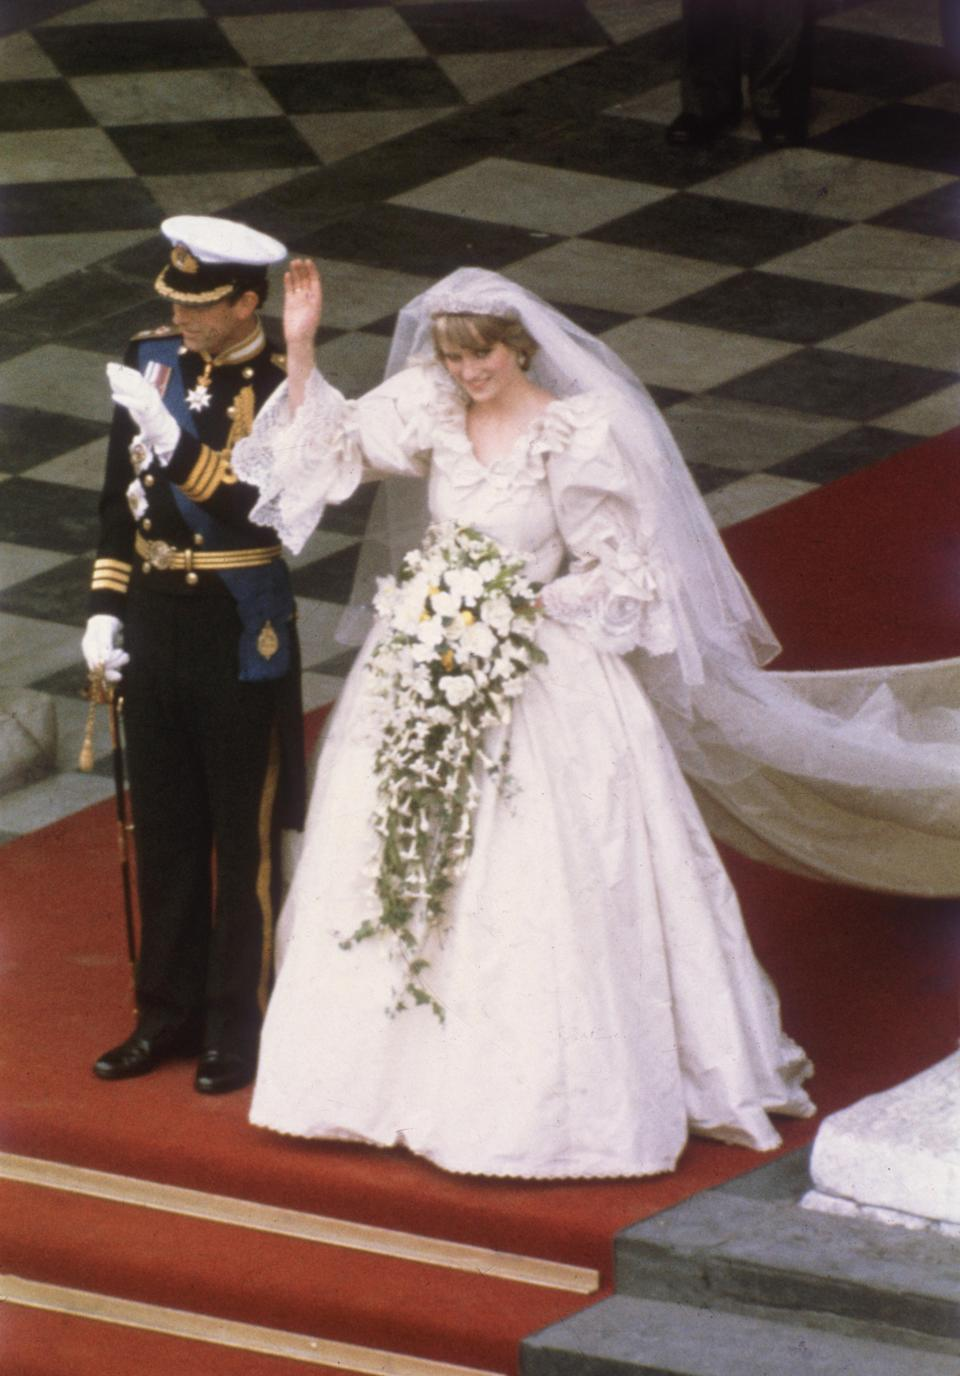 Diana's wedding dress is now part of William and Harry's private collection. (Getty Images)